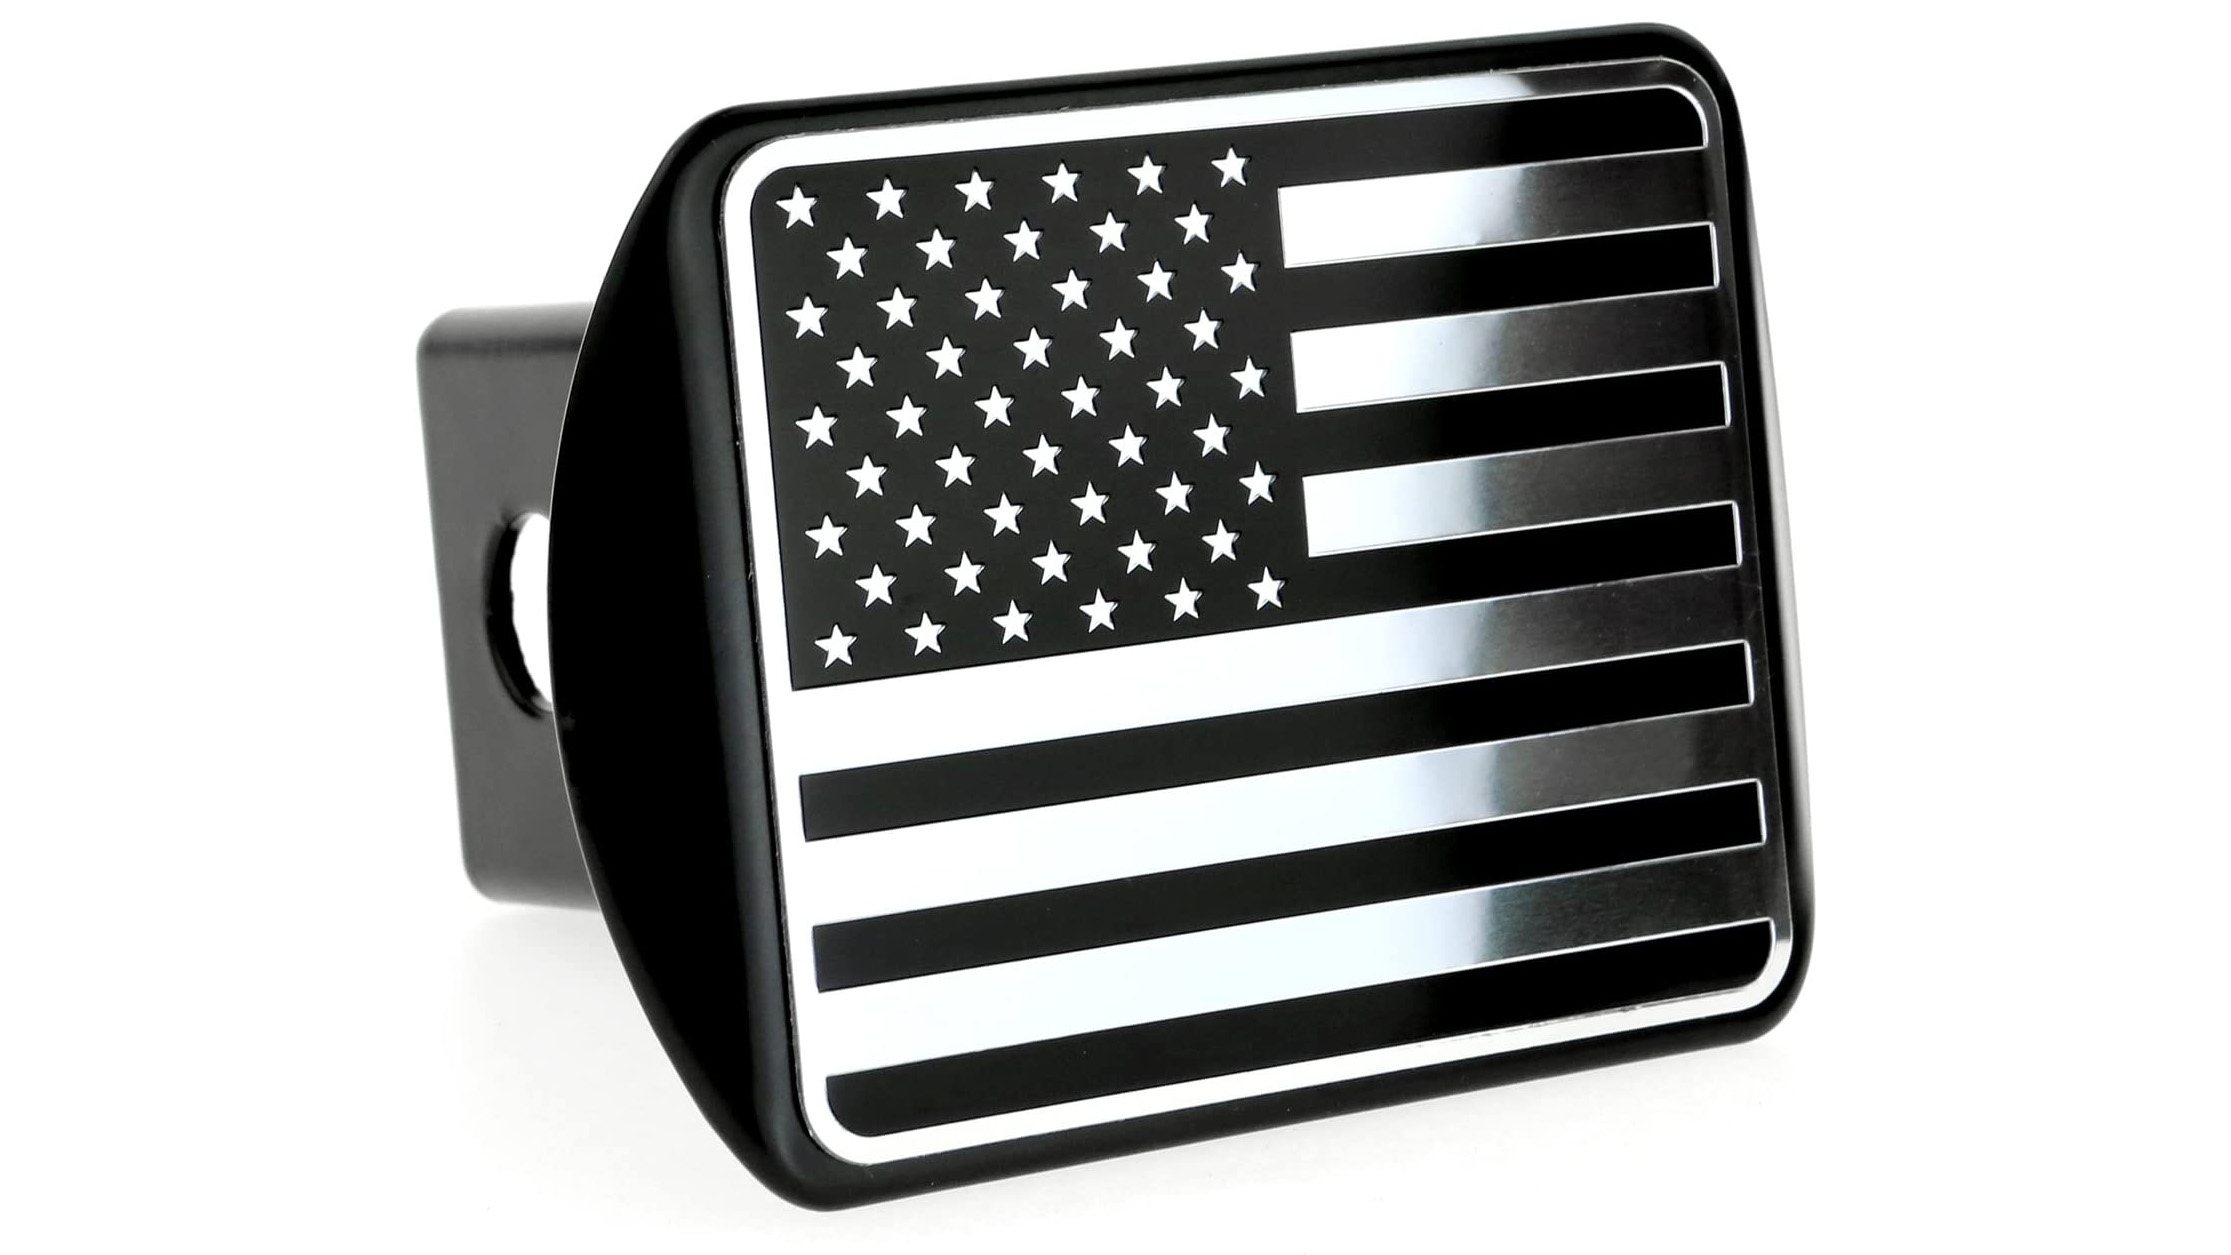 Chrome Star Metal Trailer Hitch Cover Fits 2 Receivers